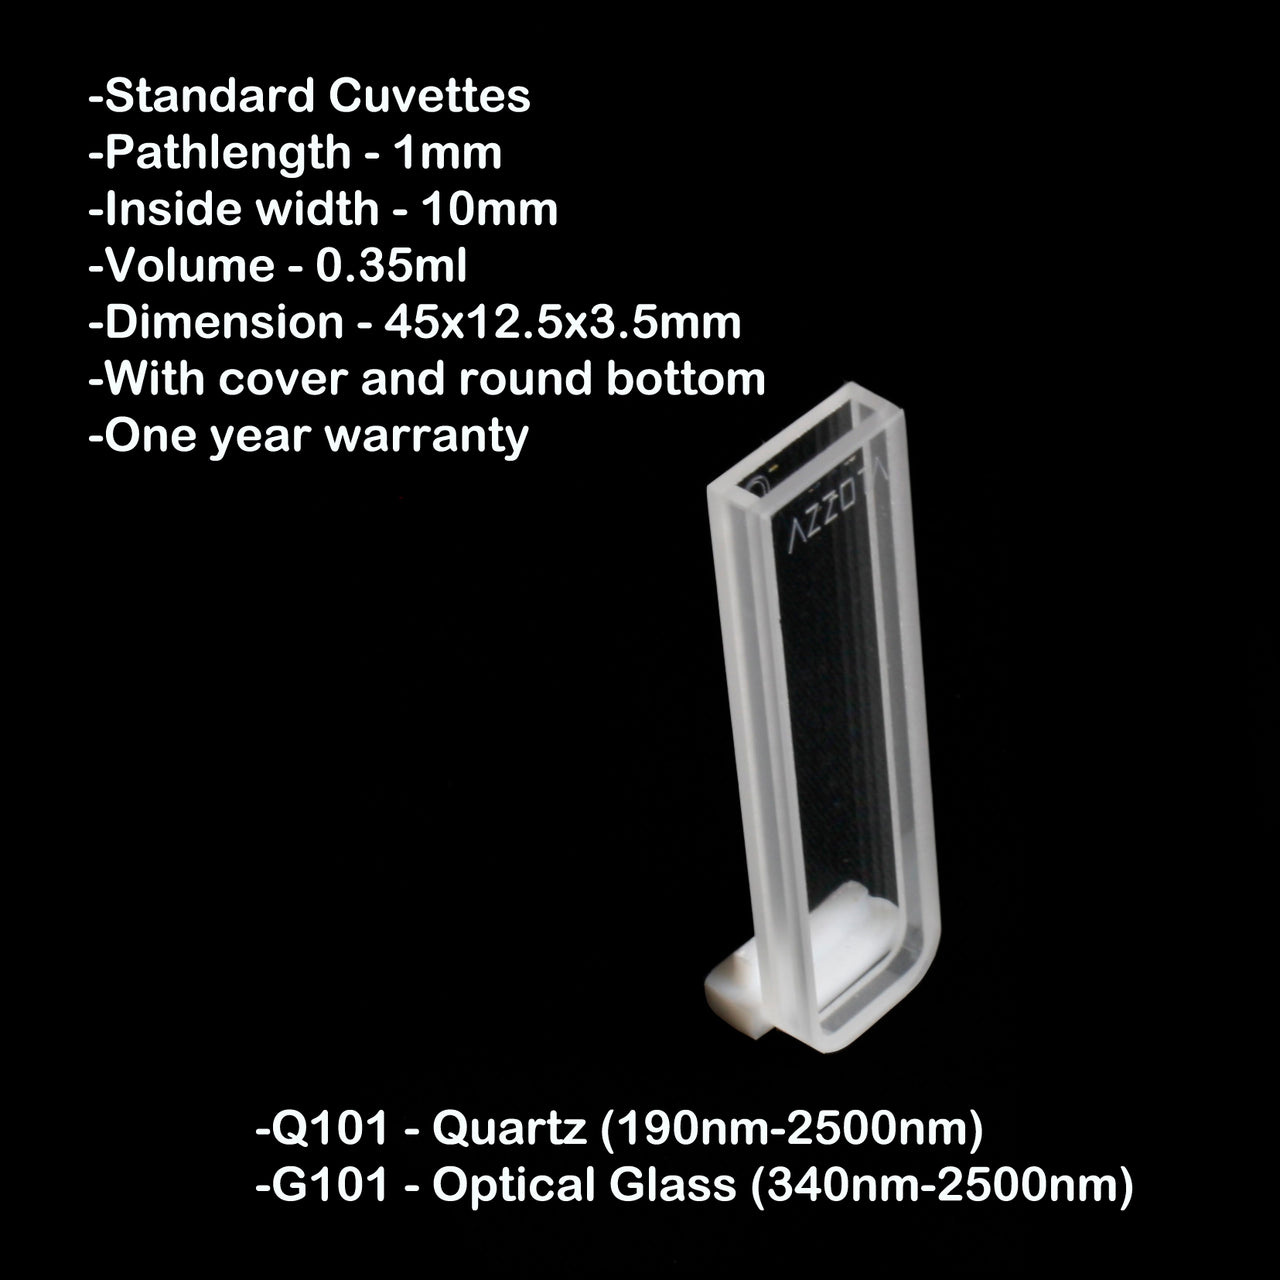 1mm Pathlength Standard Cuvette - 0.35ml